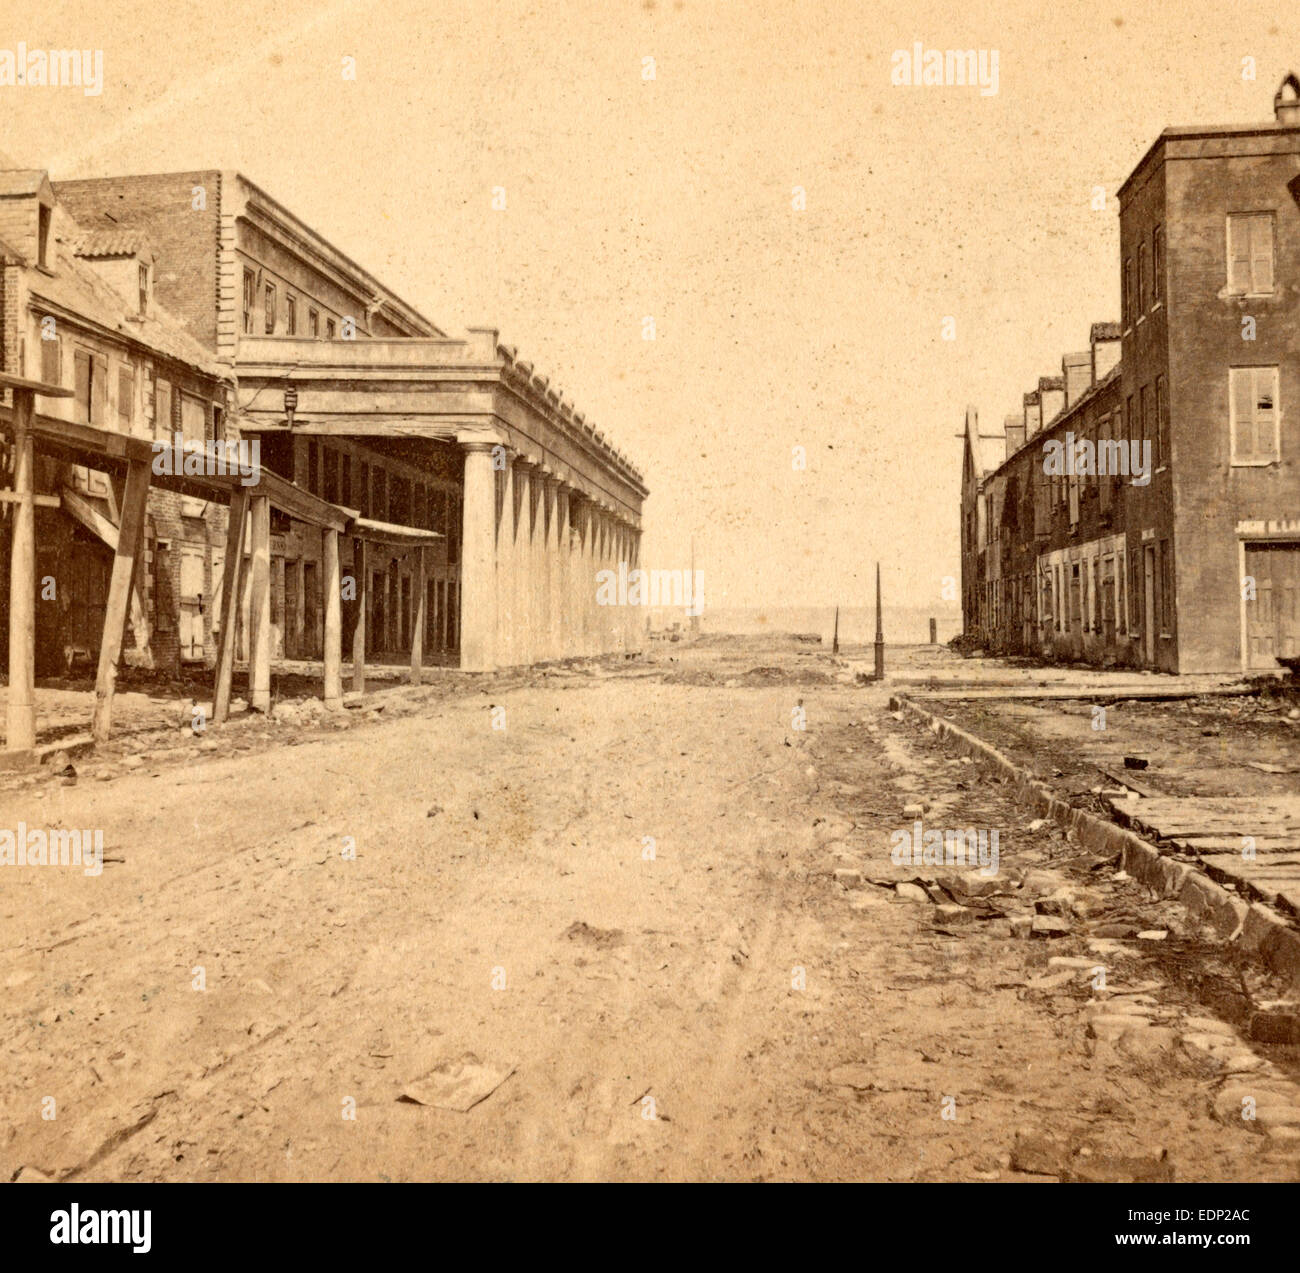 Vendue Range, Charleston, S.C., looking east, from near the corner of East Bay St., USA, US, Vintage photography - Stock Image